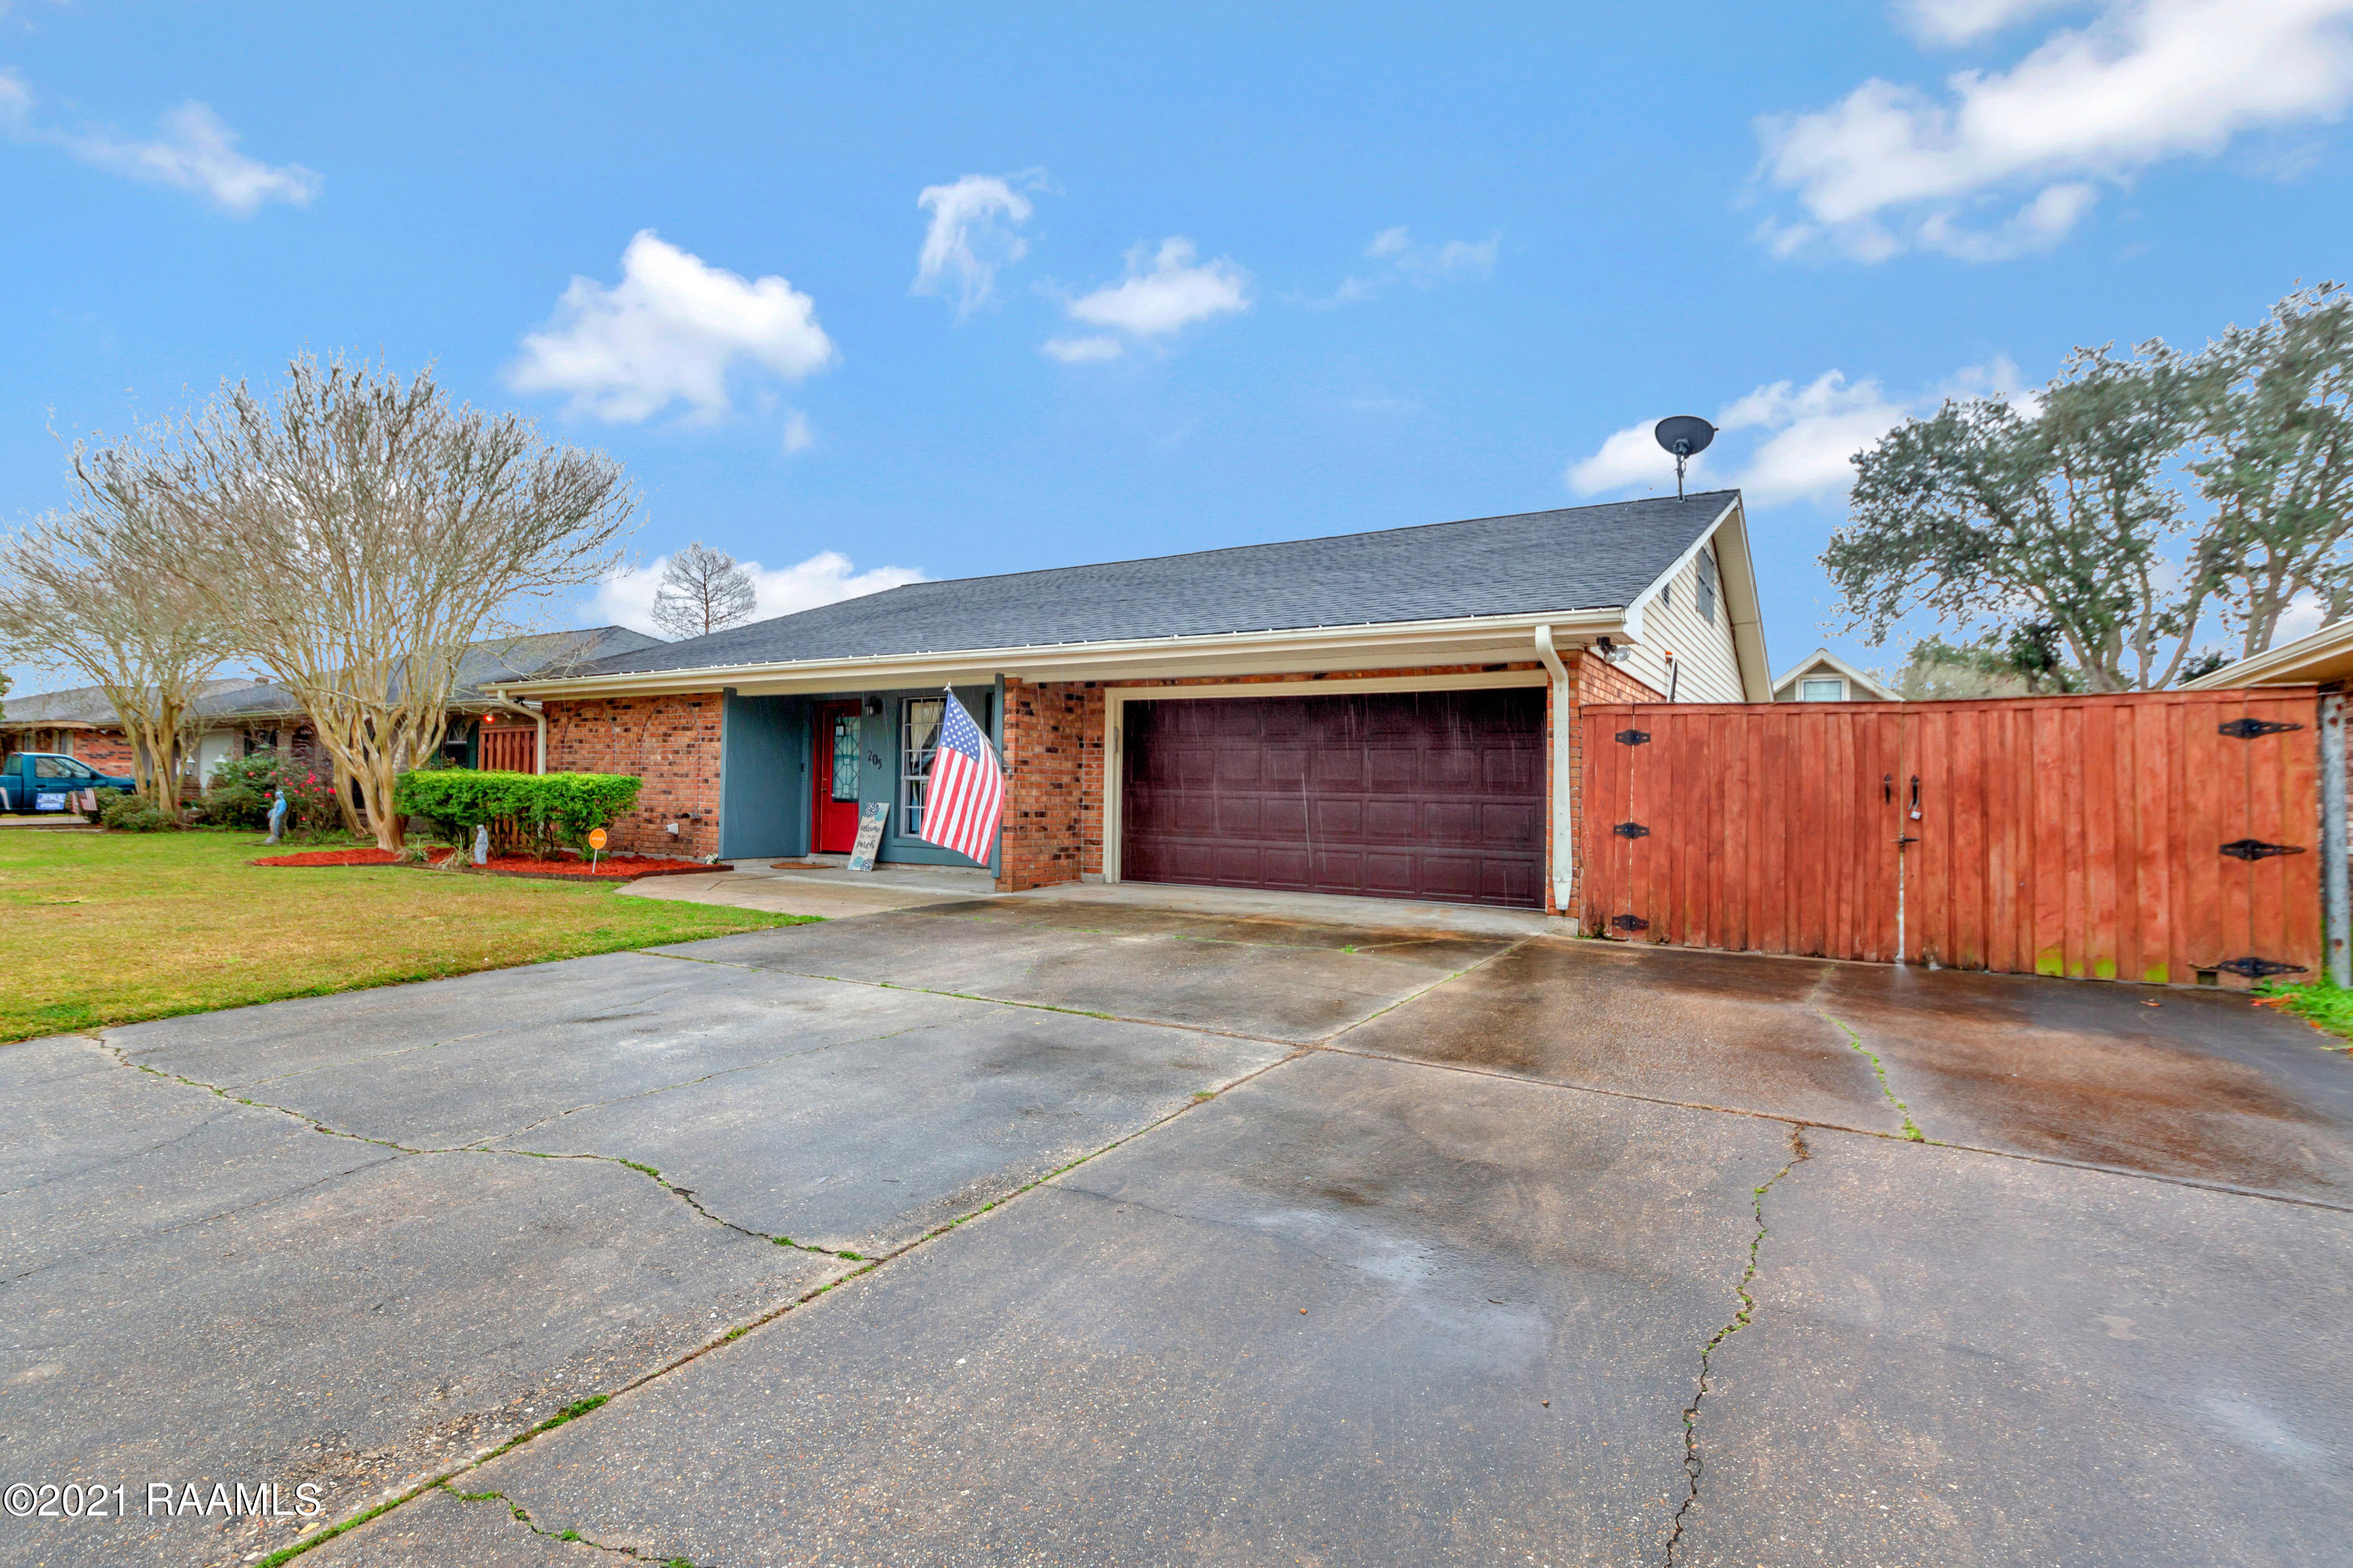 205 Hogan Street, Berwick, LA 70342 Photo #4